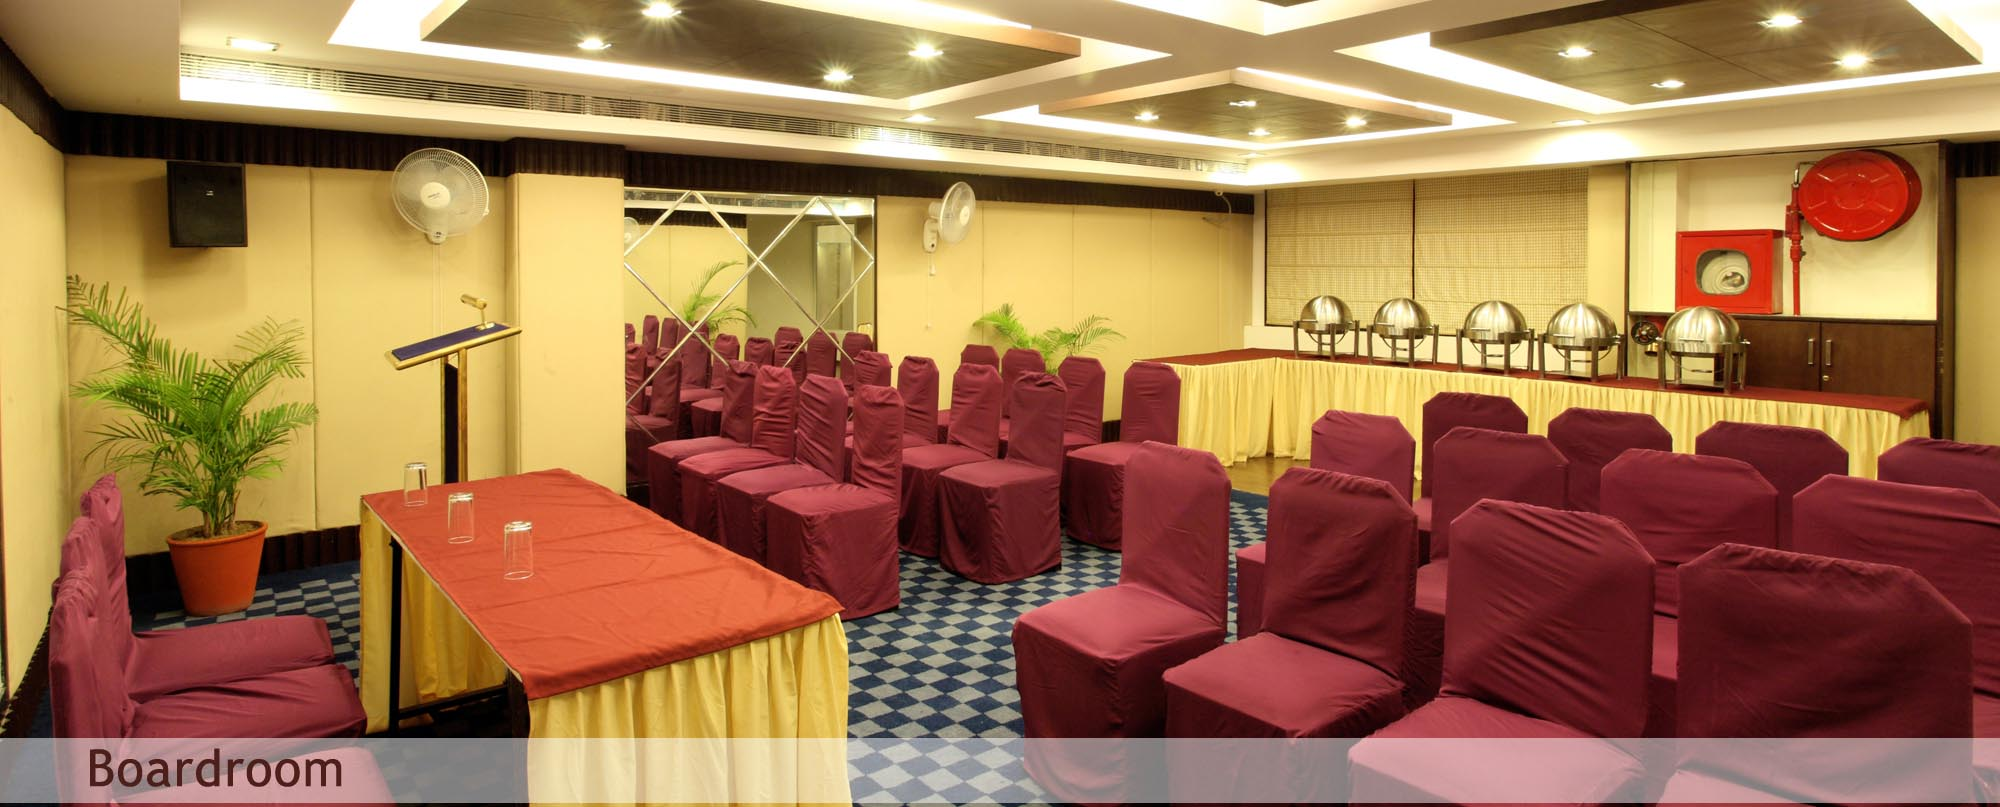 banquet facilities in kota